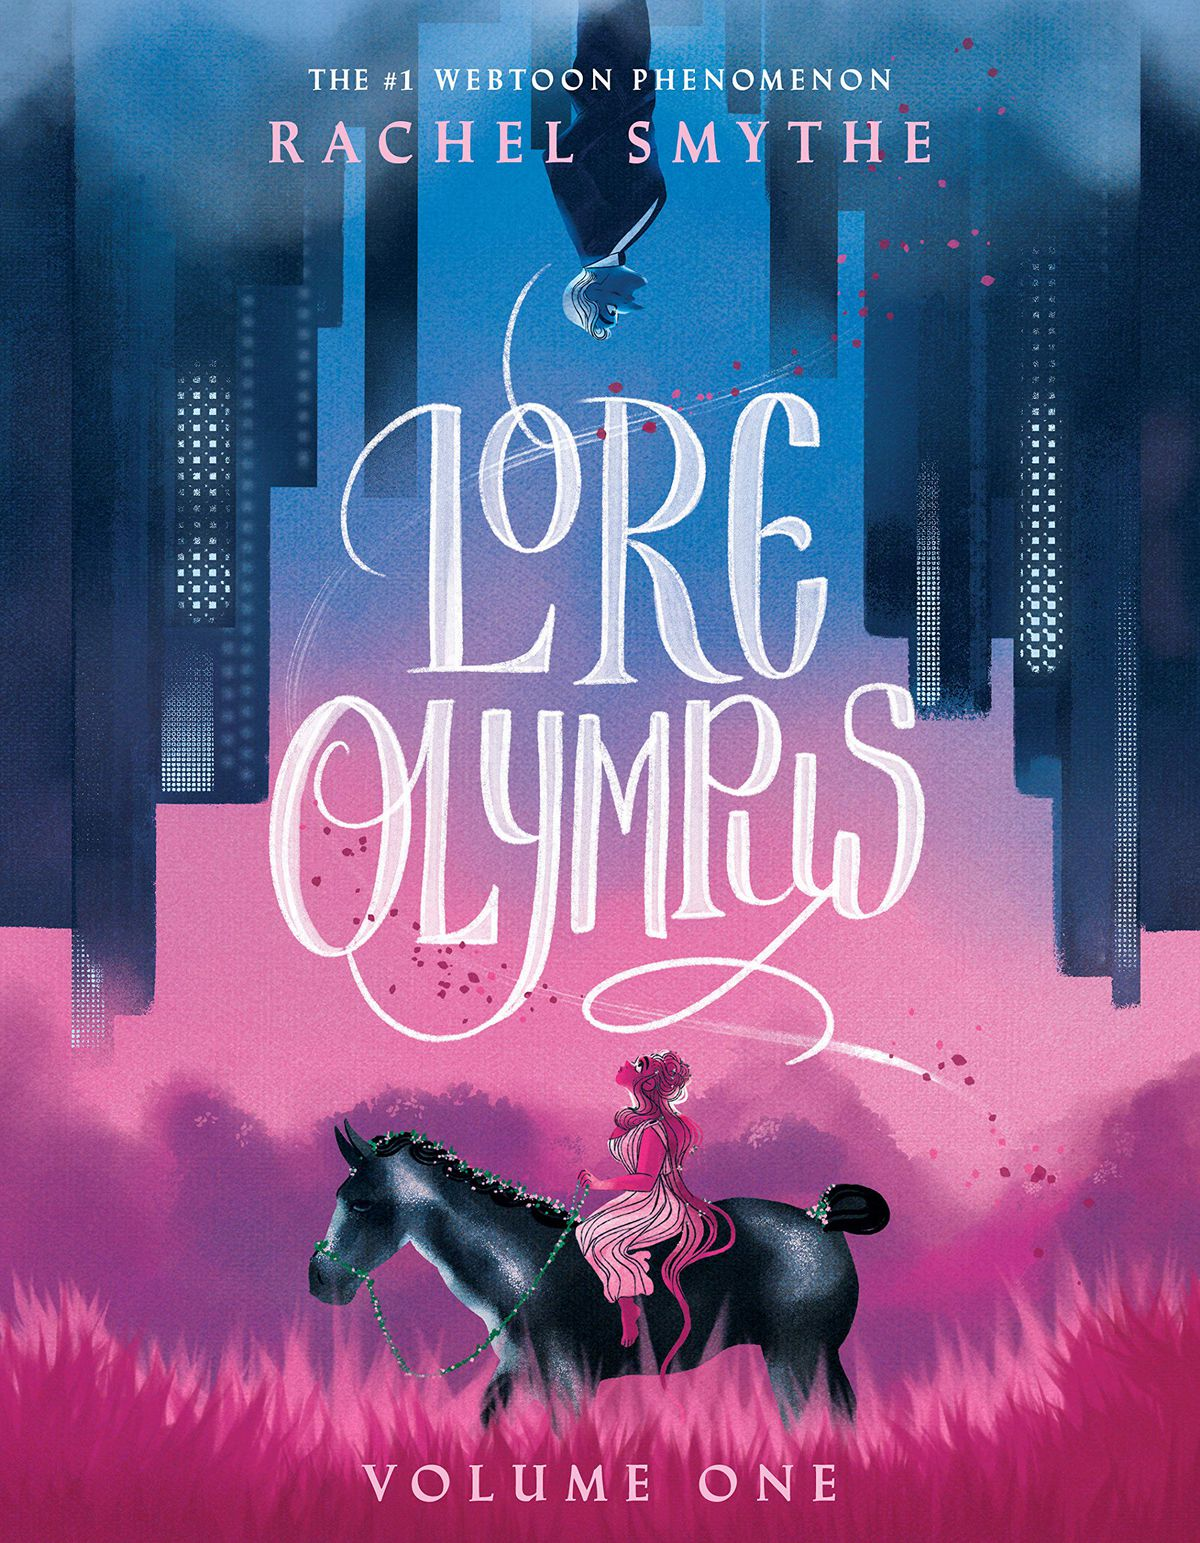 Persephone rides a black horse through a pink field, Hades hangs suspended above her on the cover of Lore Olympus Vol. 1.